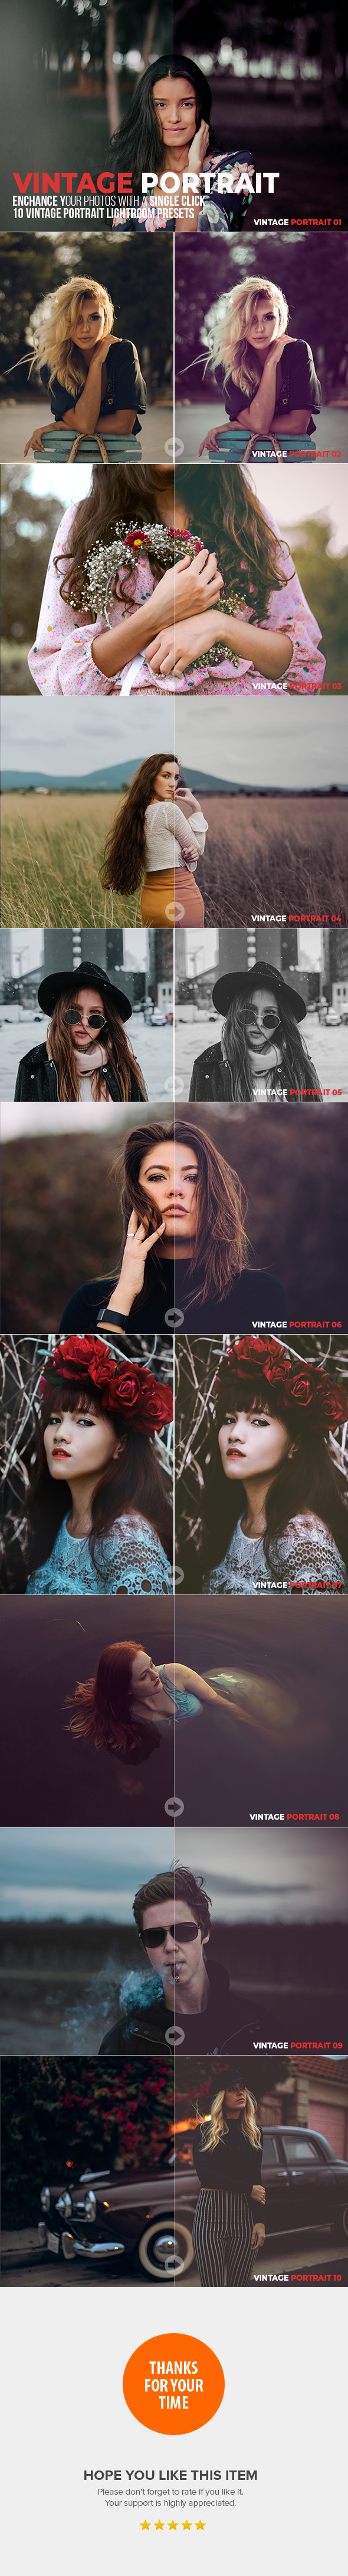 10 Vintage Portrait Lightroom Presets - Portrait Lightroom Presets